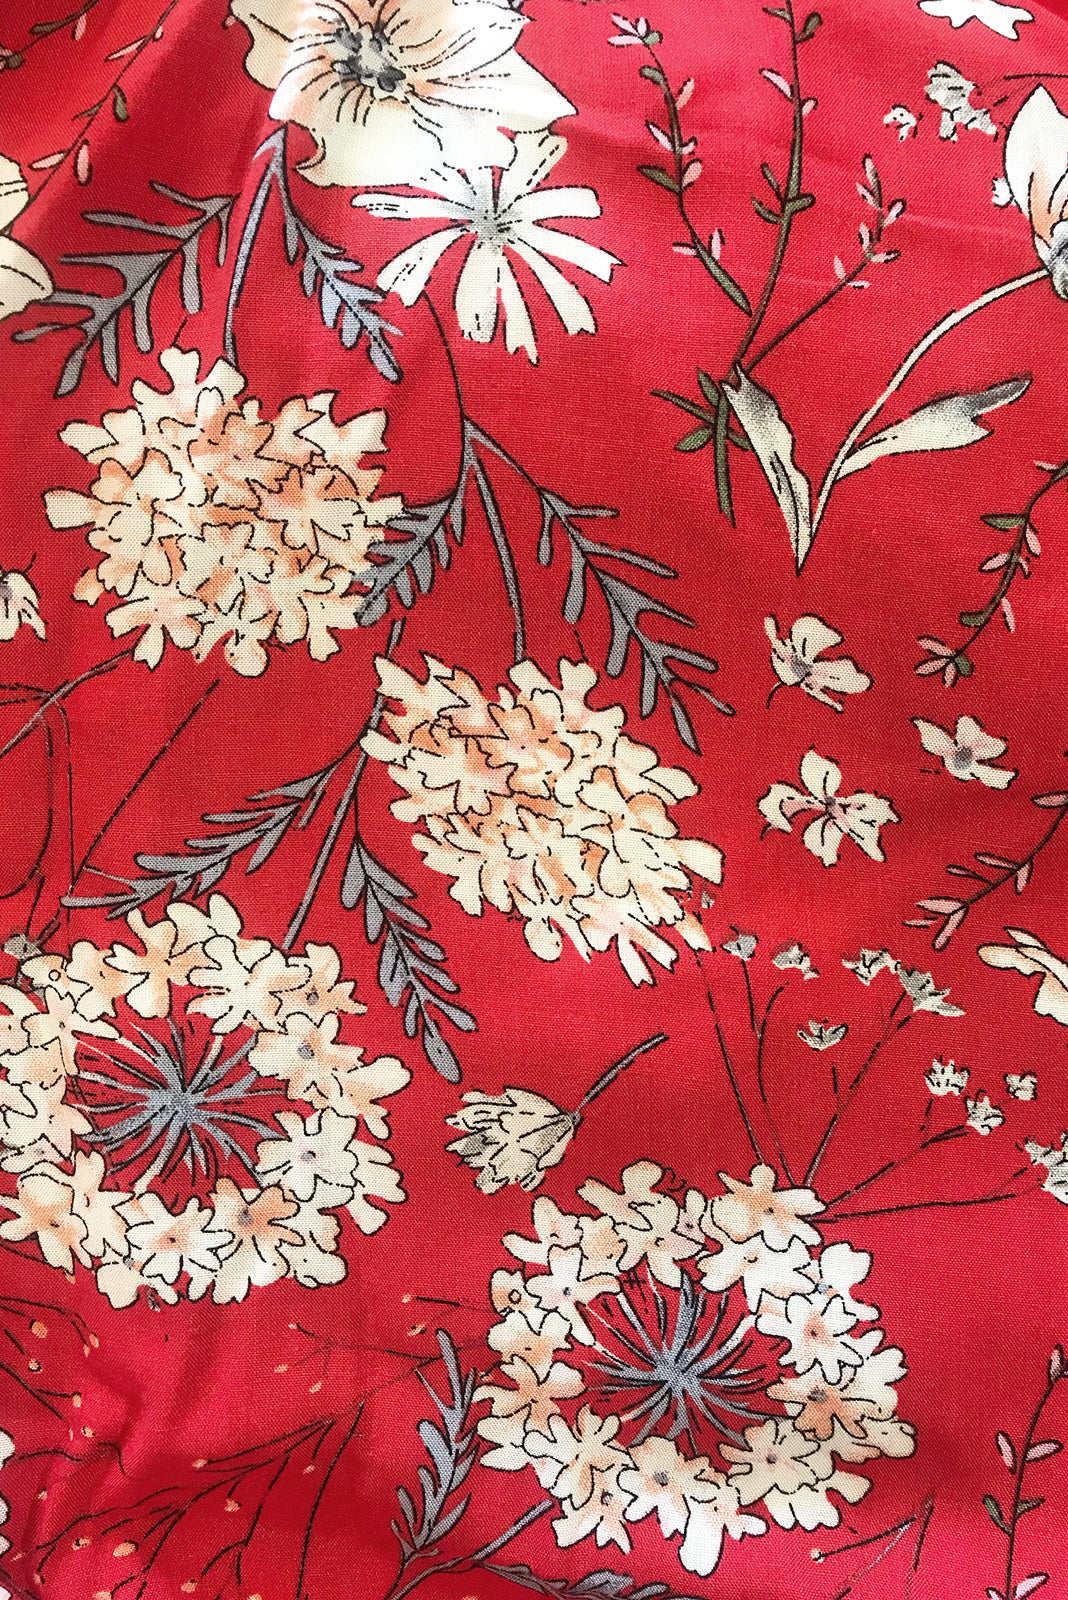 Fabric swatch, 100% woven rayon, bright red base with large cream, gold and soft sage floral print.